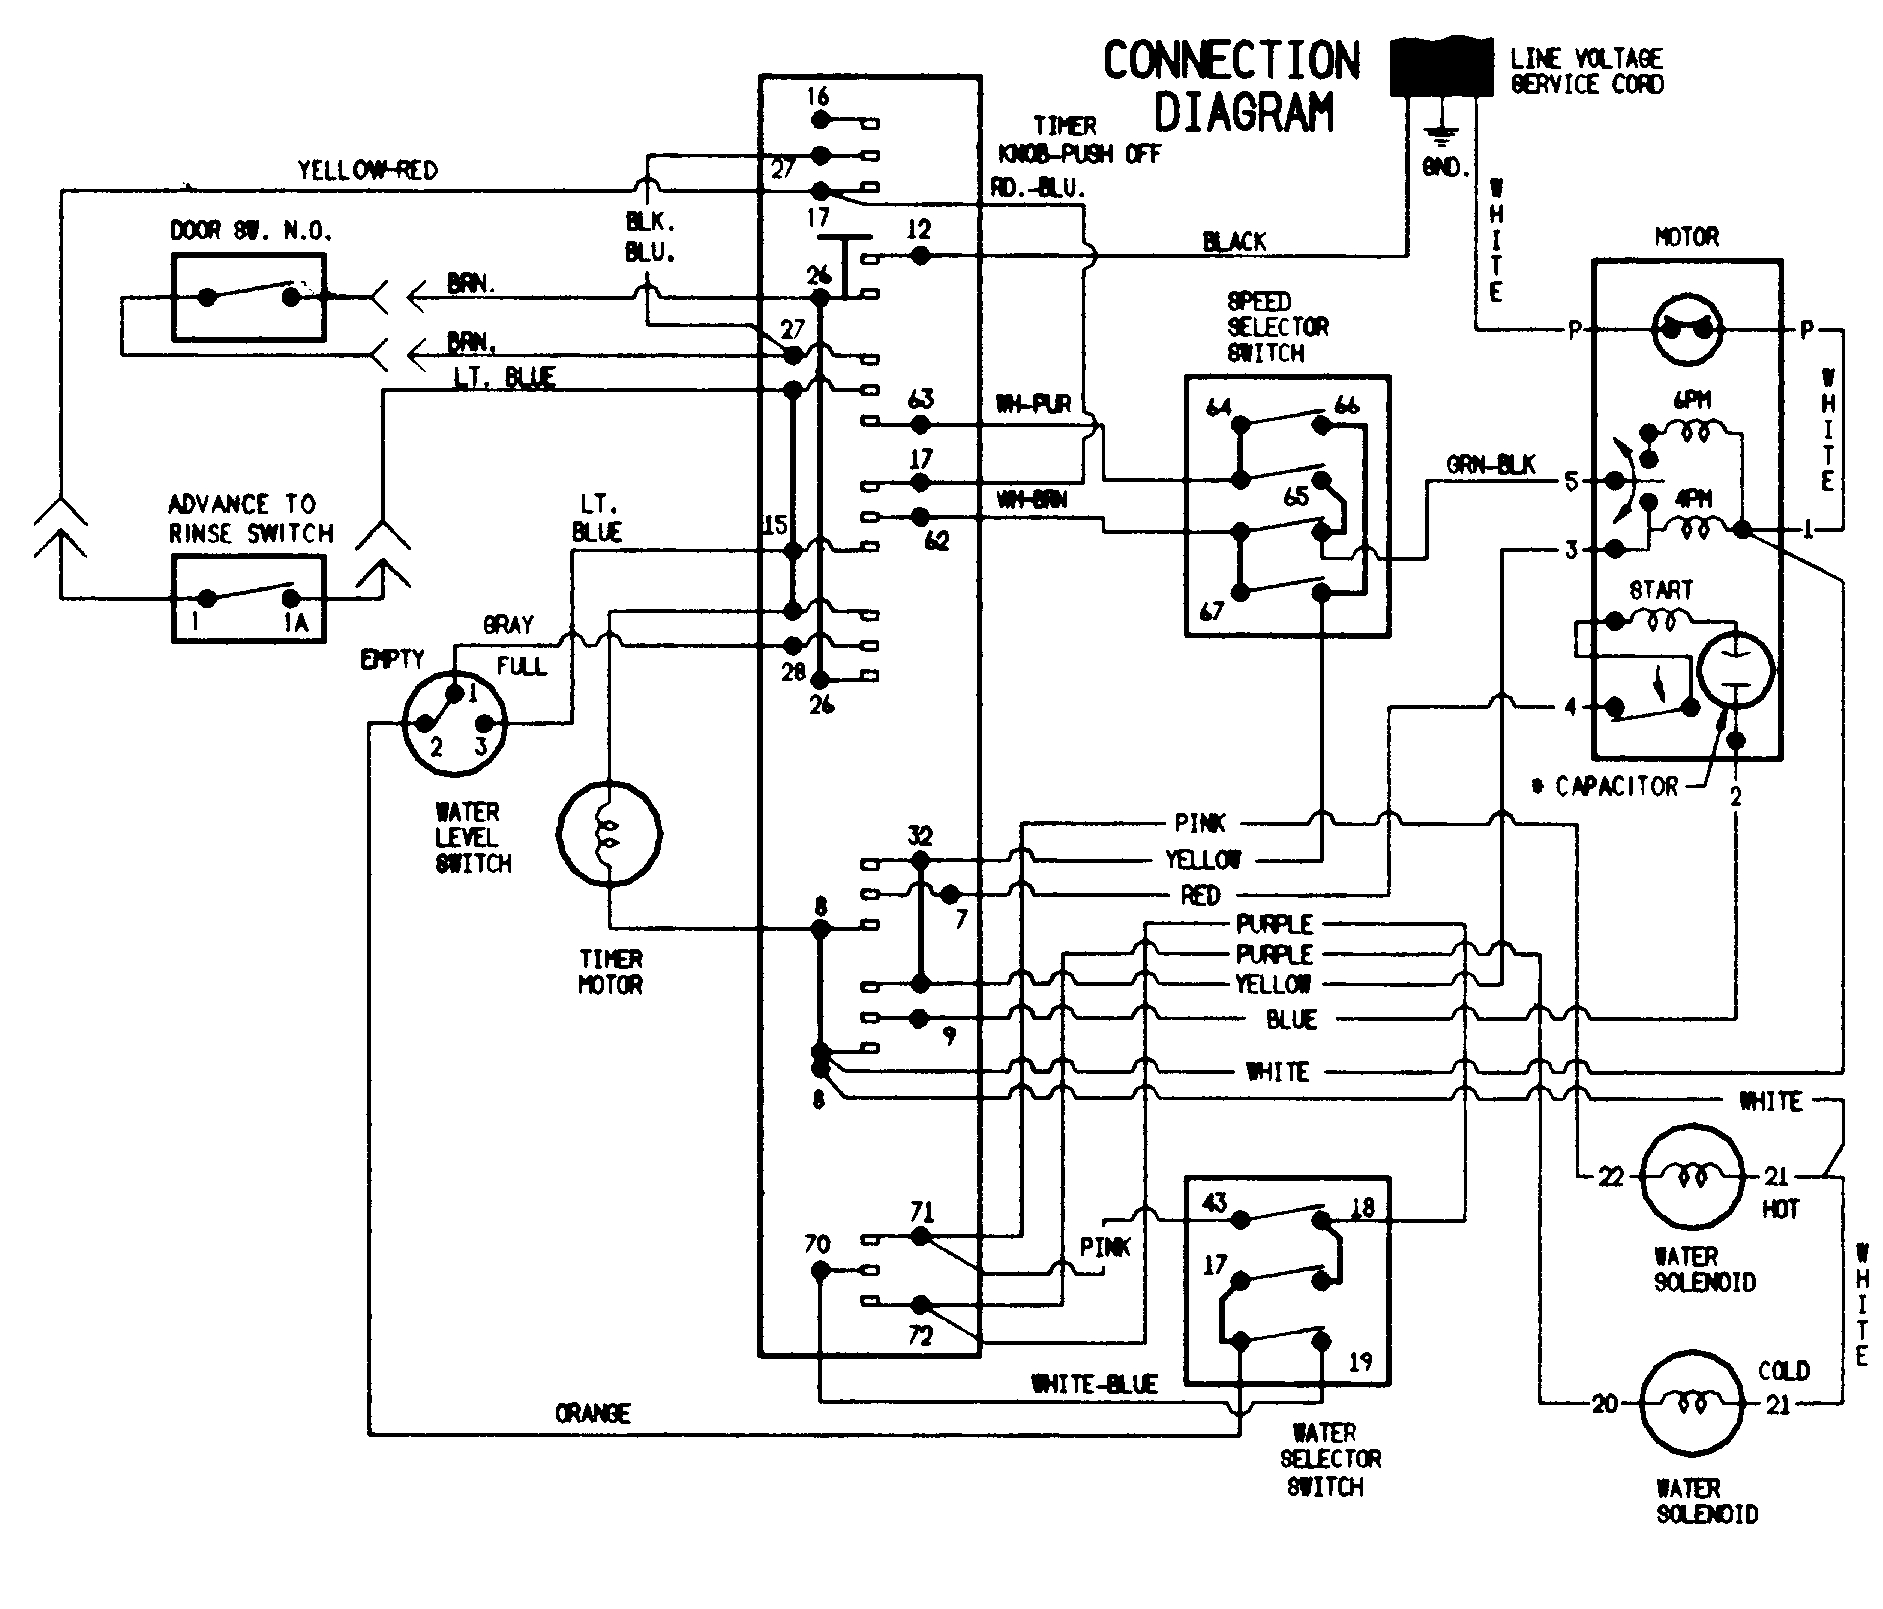 dryer wiring diagram how to wire a dryer outlet 3 prong e280a2 sharedw regarding kenmore 80 series dryer parts diagram dryer wiring diagram how to wire a dryer outlet 3 prong \u2022 sharedw kenmore elite dryer wiring diagram at creativeand.co